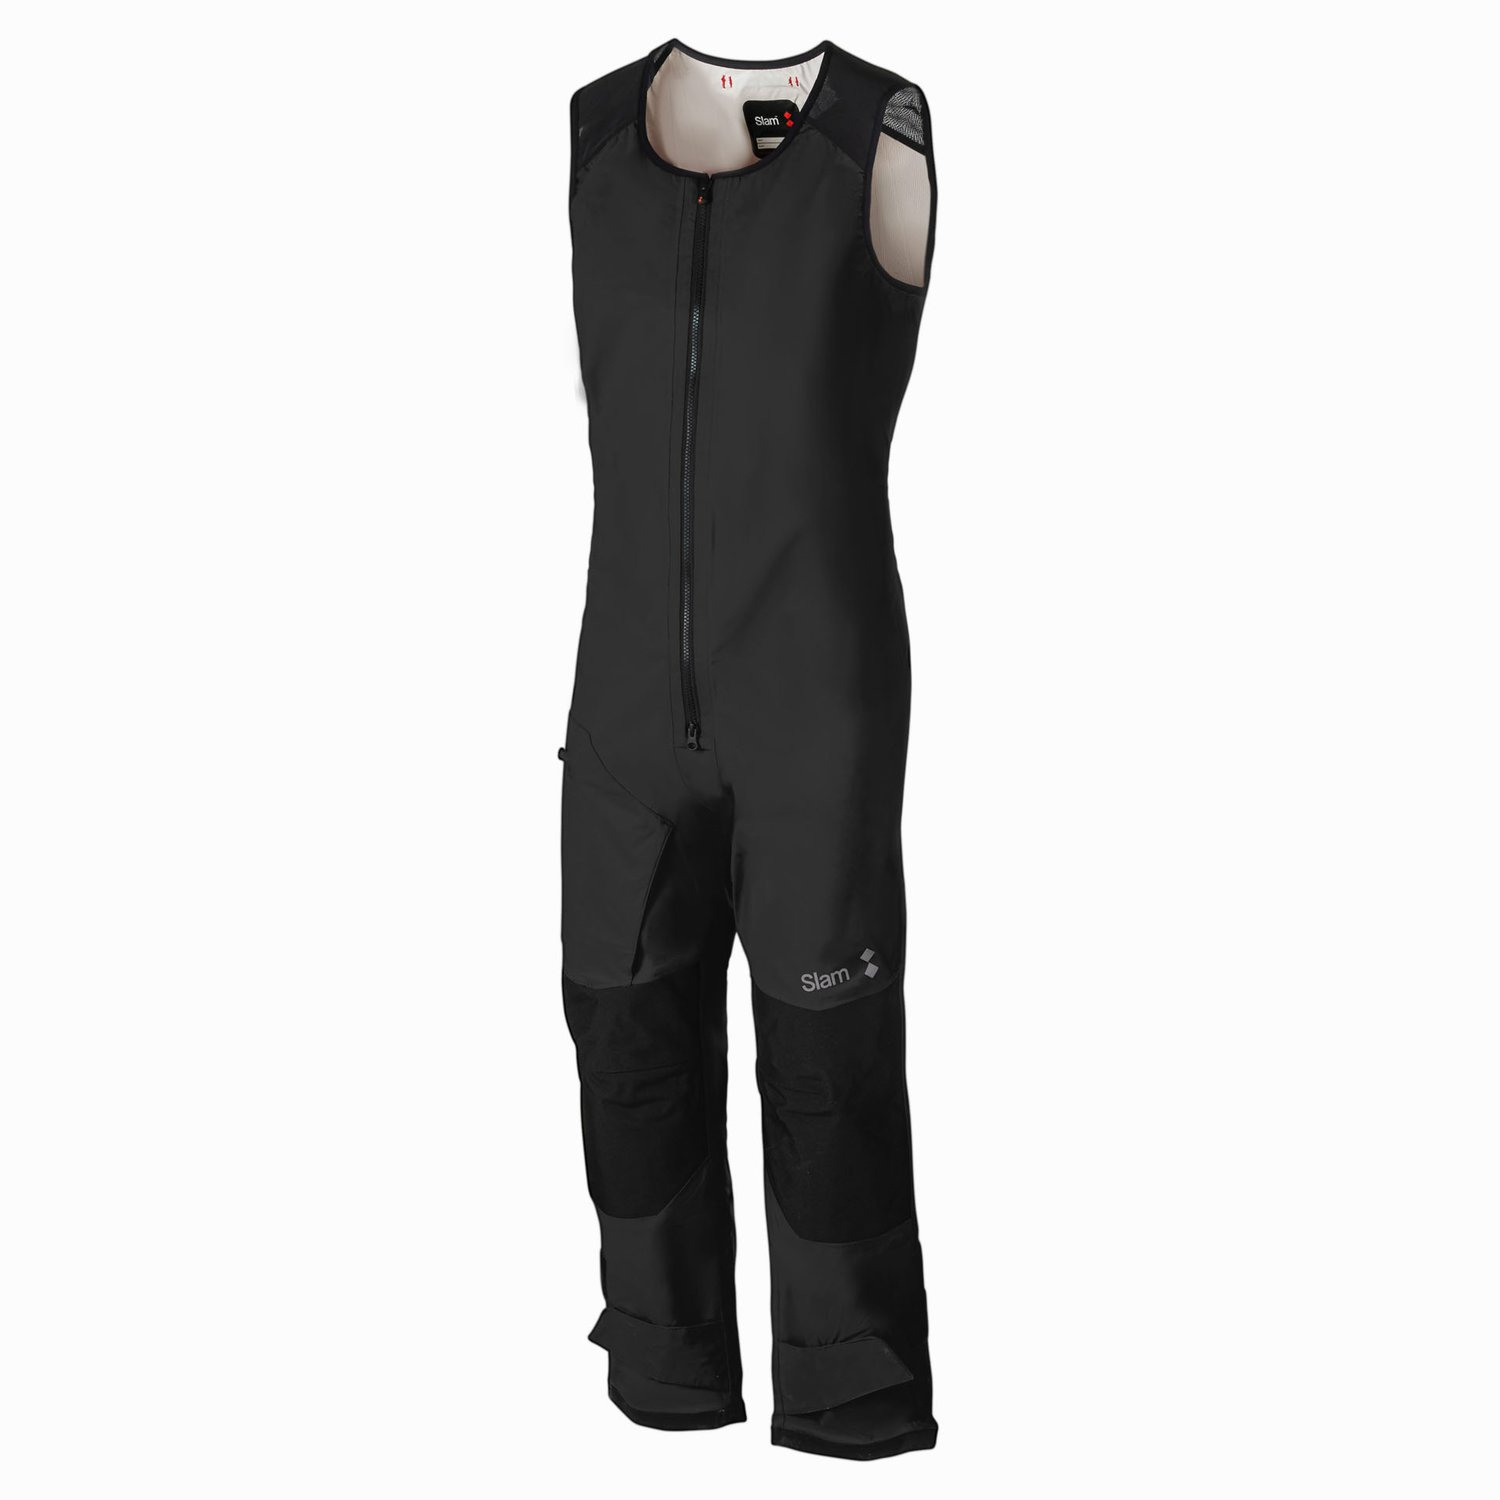 WIN-D 3 COASTAL LONG JOHN - Black